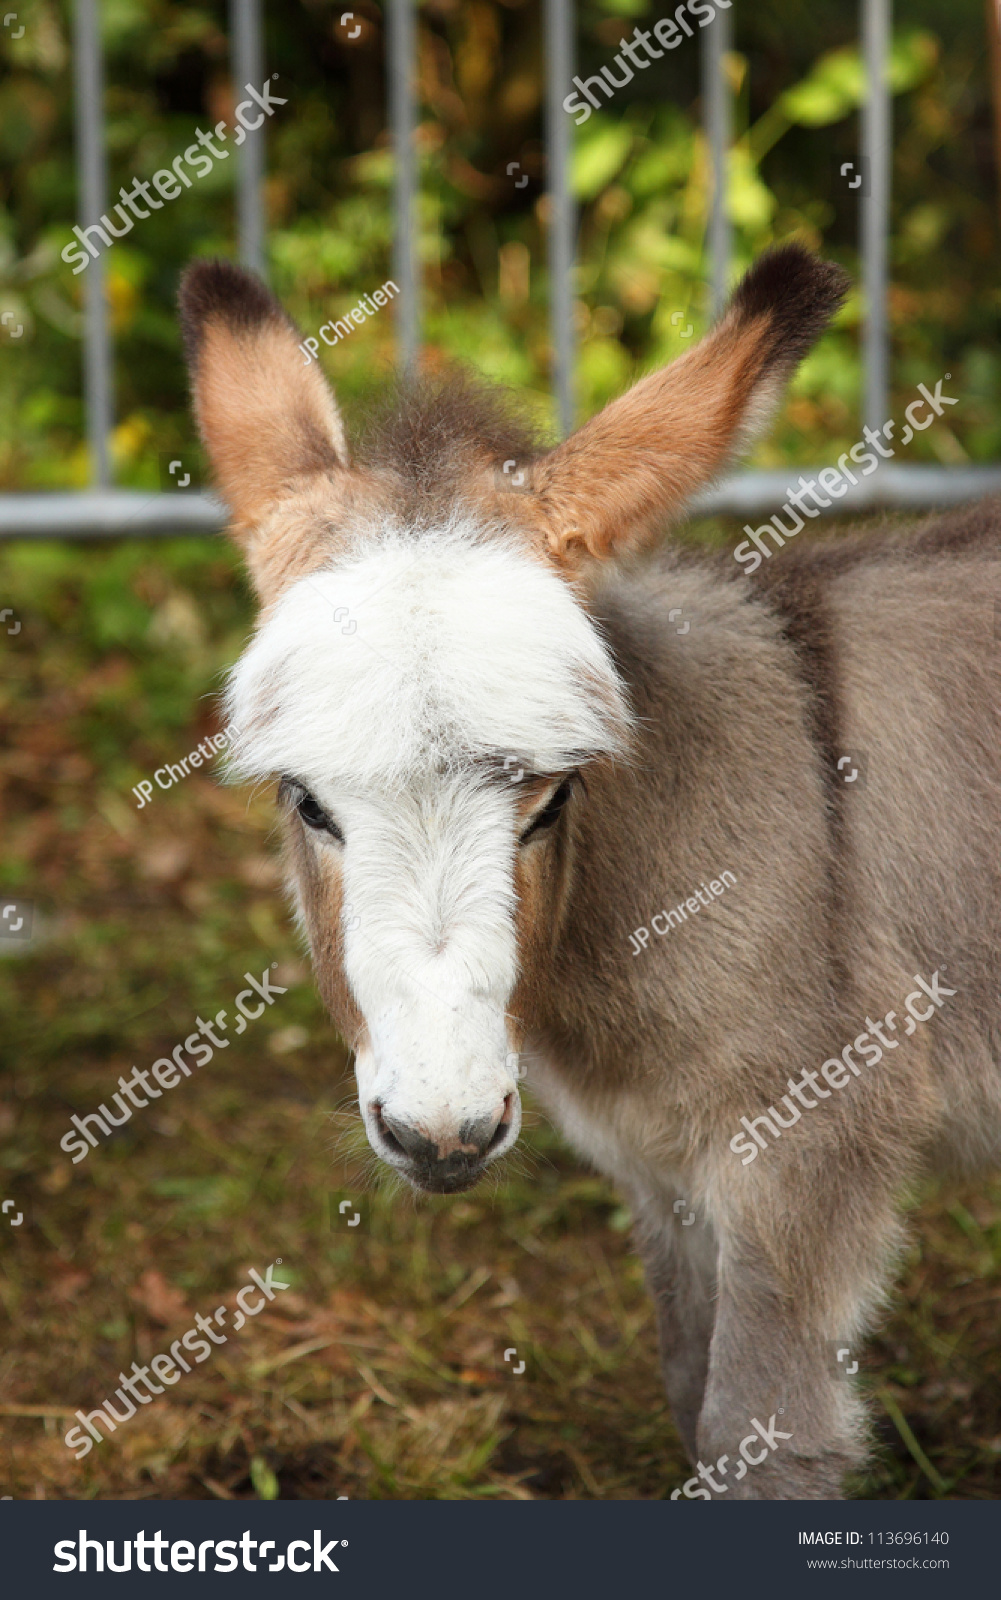 Young ass young donkey young ass